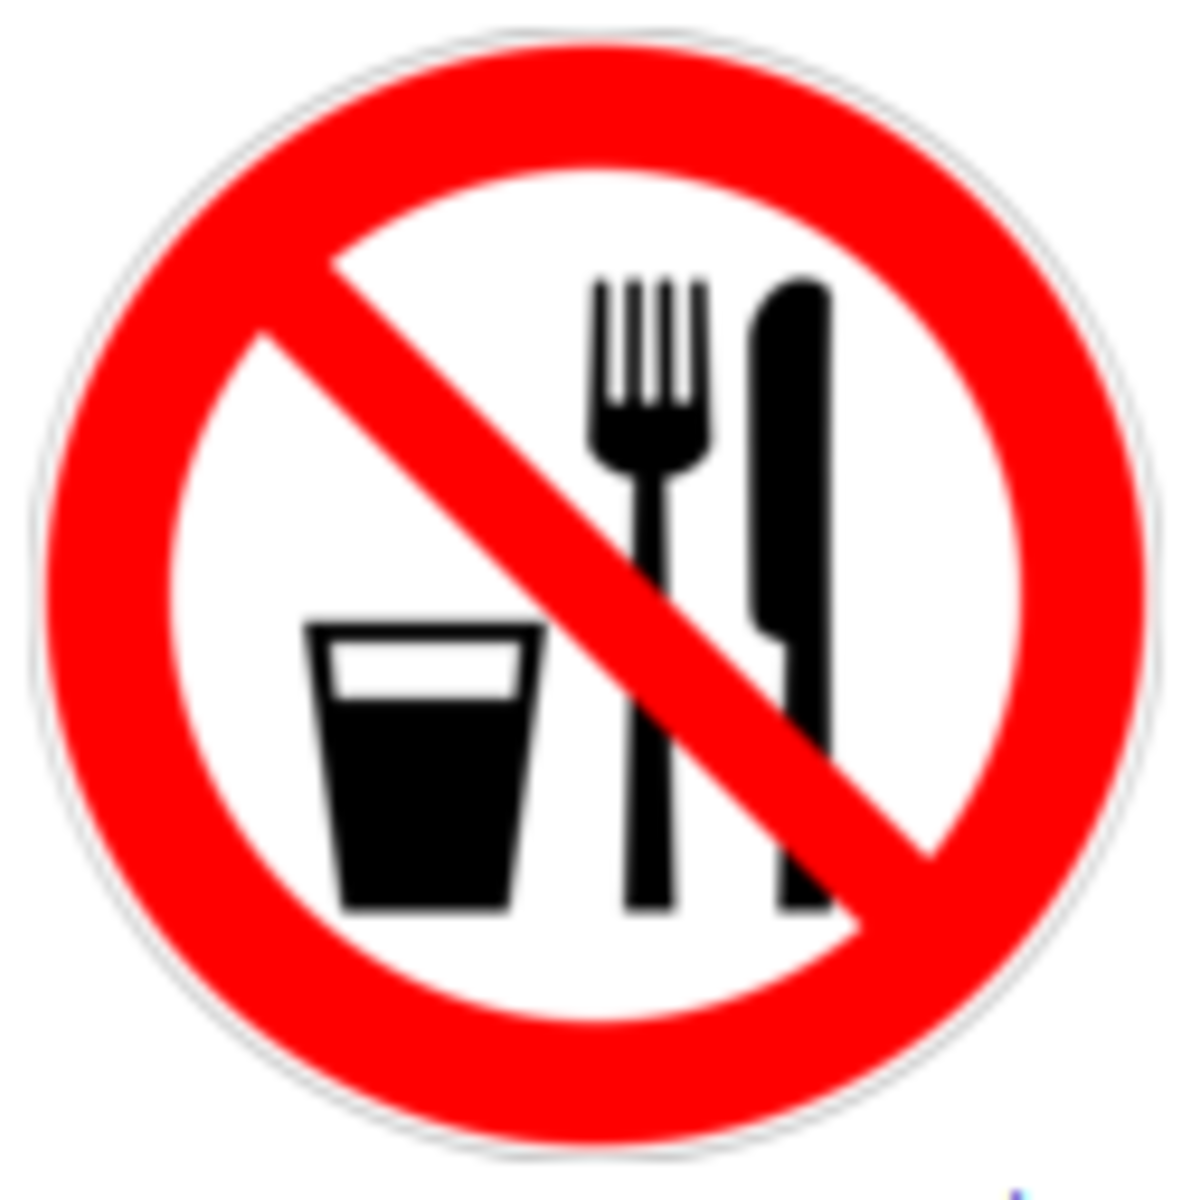 Don't eat or drink in this area.